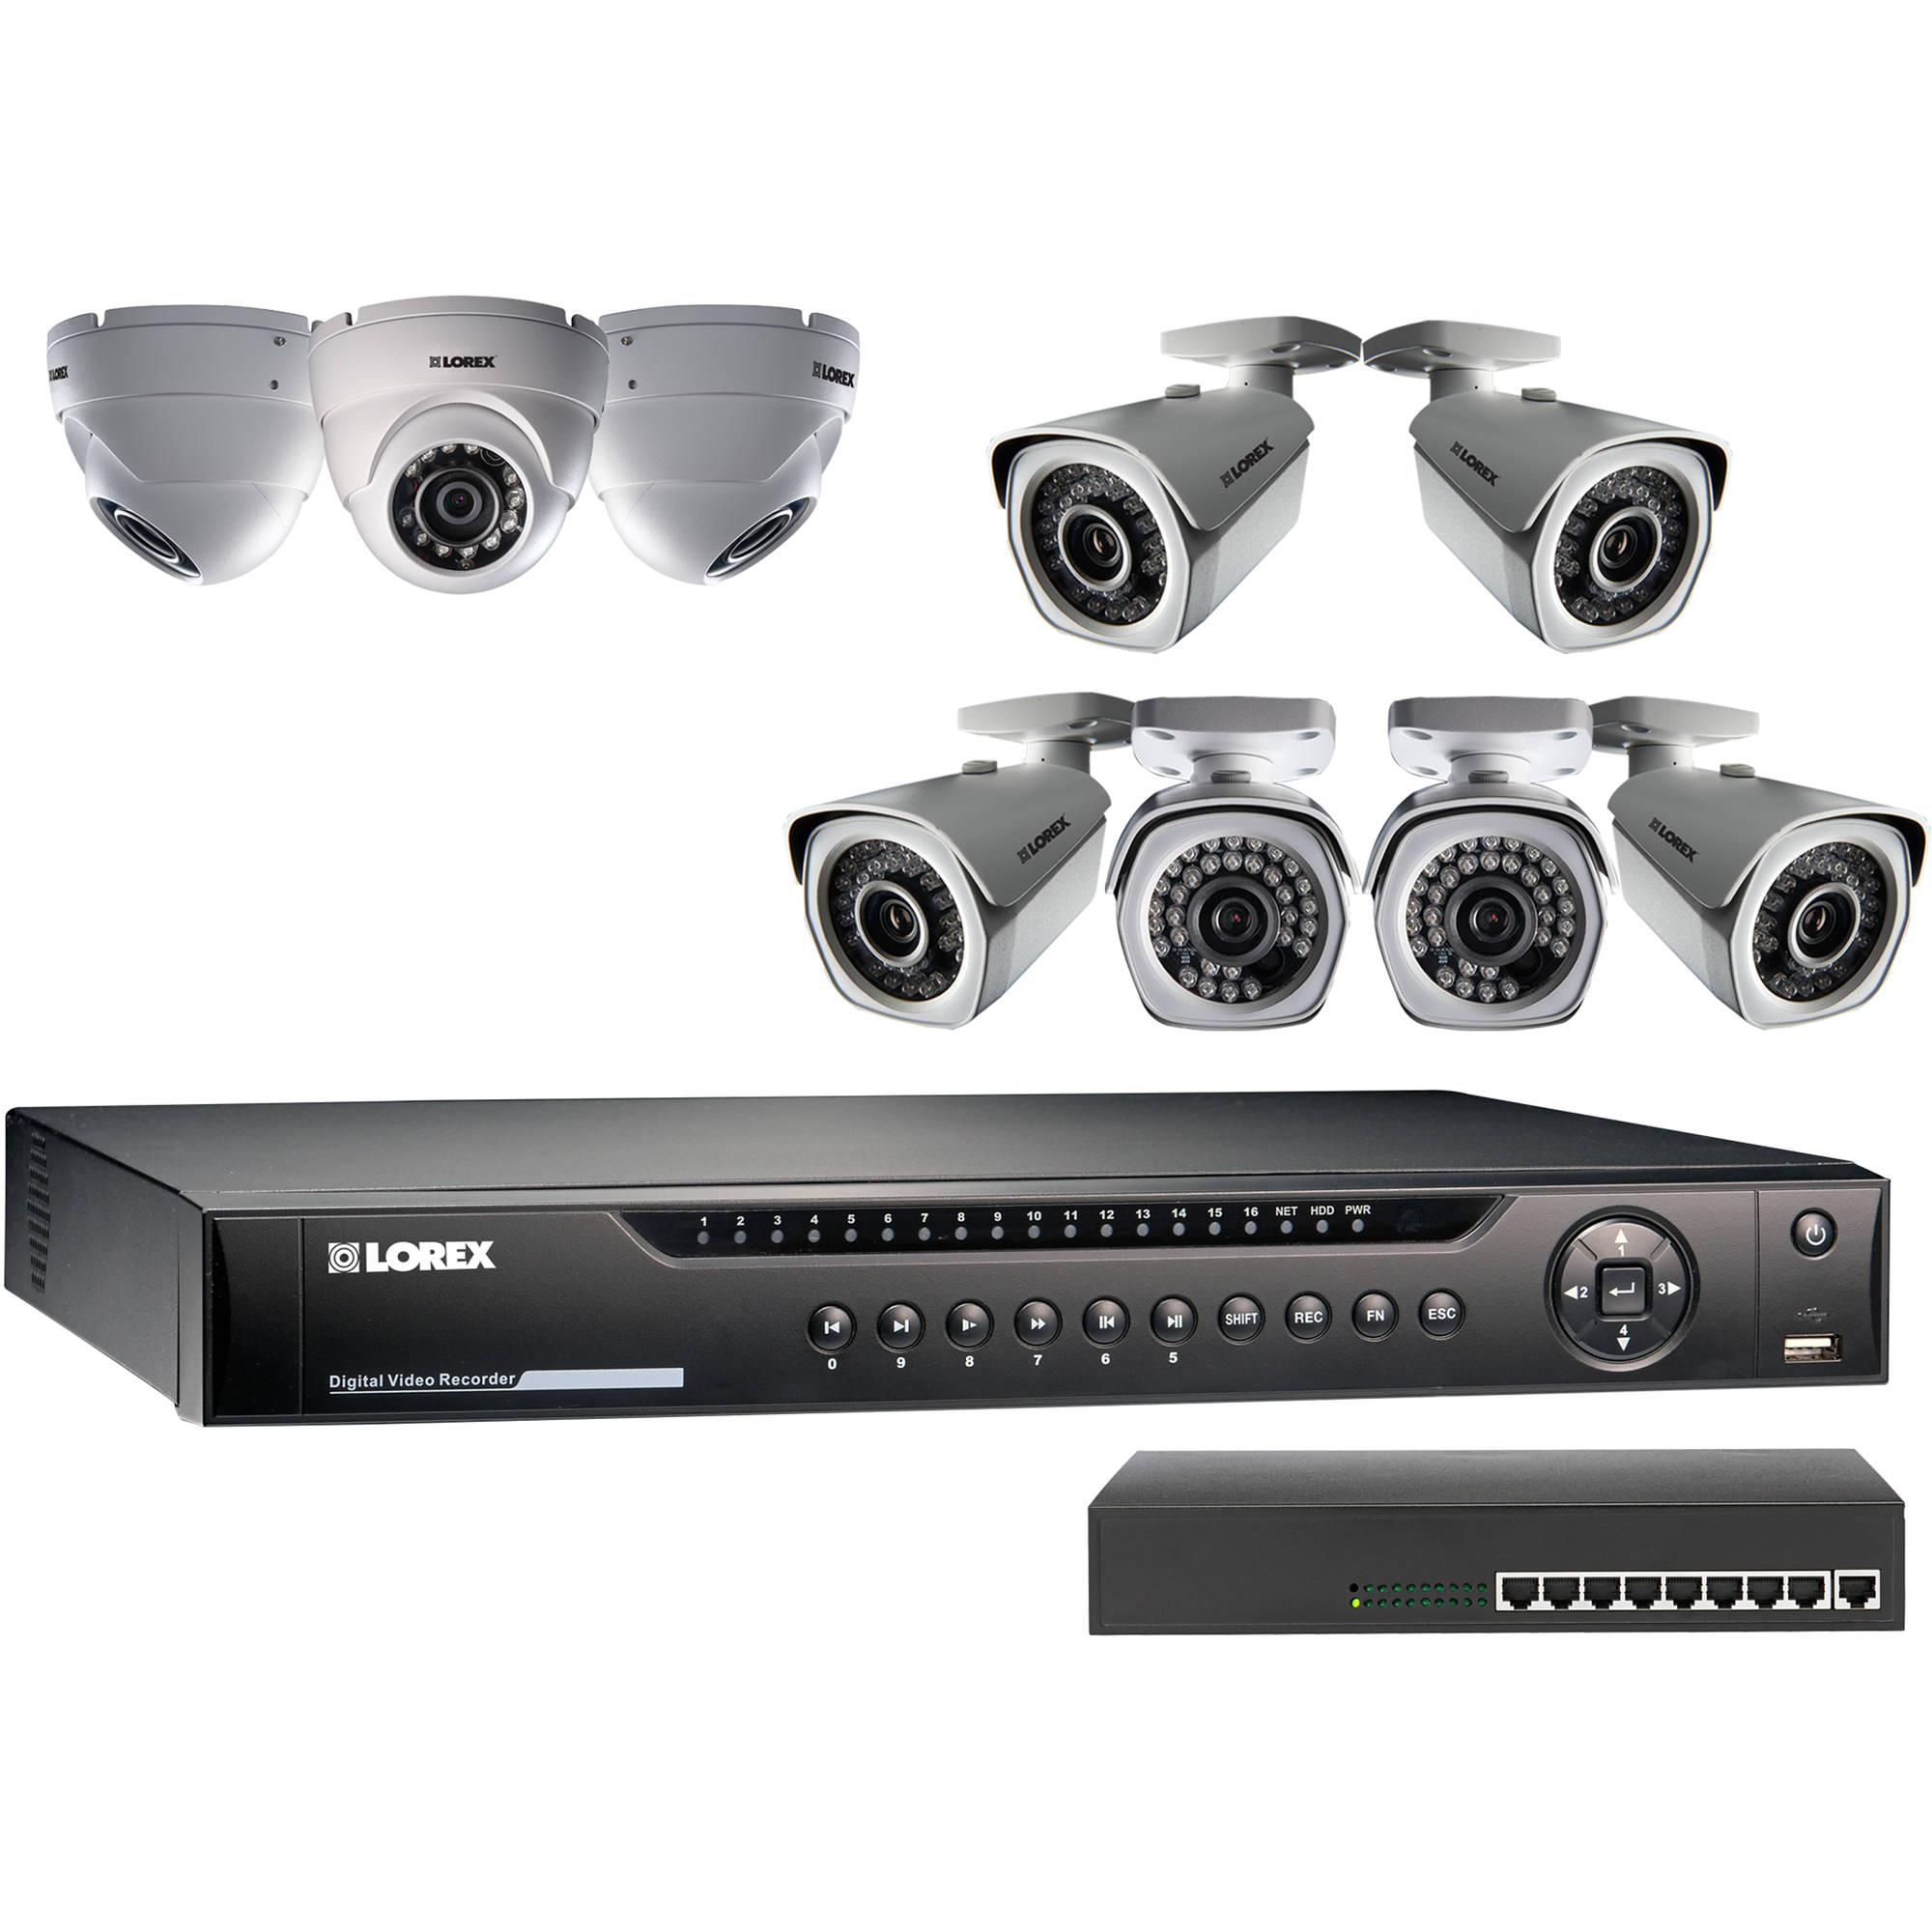 Lorex Lnr400 Series 16 Channel 1080p Nvr Kit With 6